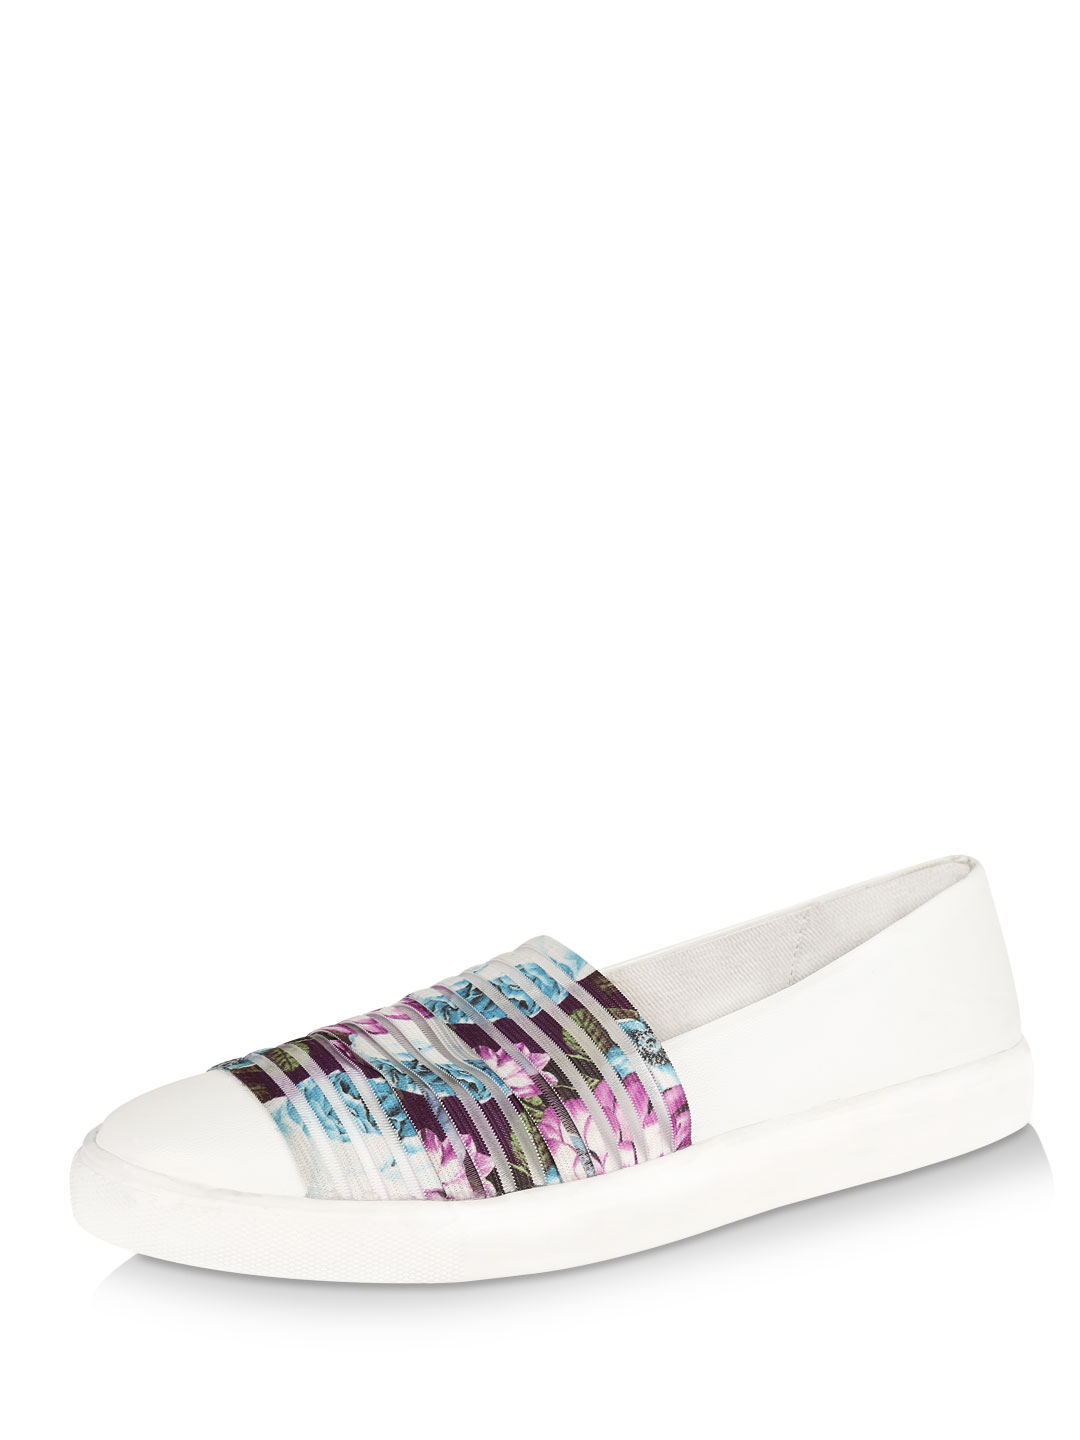 KOOVS White Printed Elastic Slip-on Pumps 1